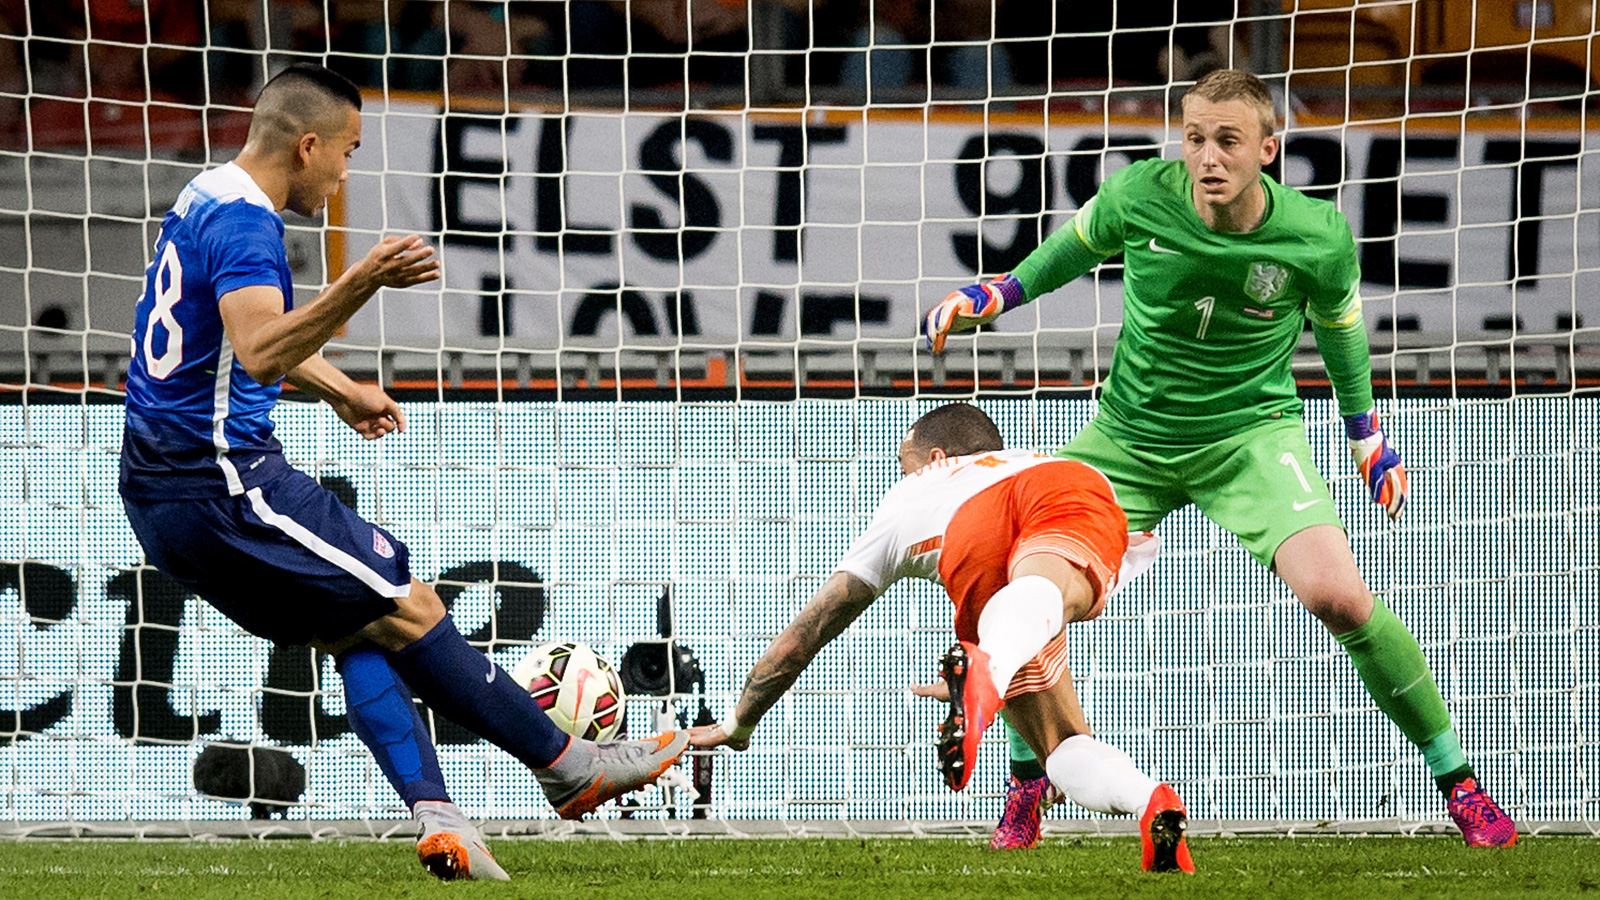 Bobby Wood puts the finishing touch on an epic comeback, with his 90th-minute strike capping a wild 4-3 win for the USA over the Netherlands. The USA trailed 3-1 in the 71st minute.